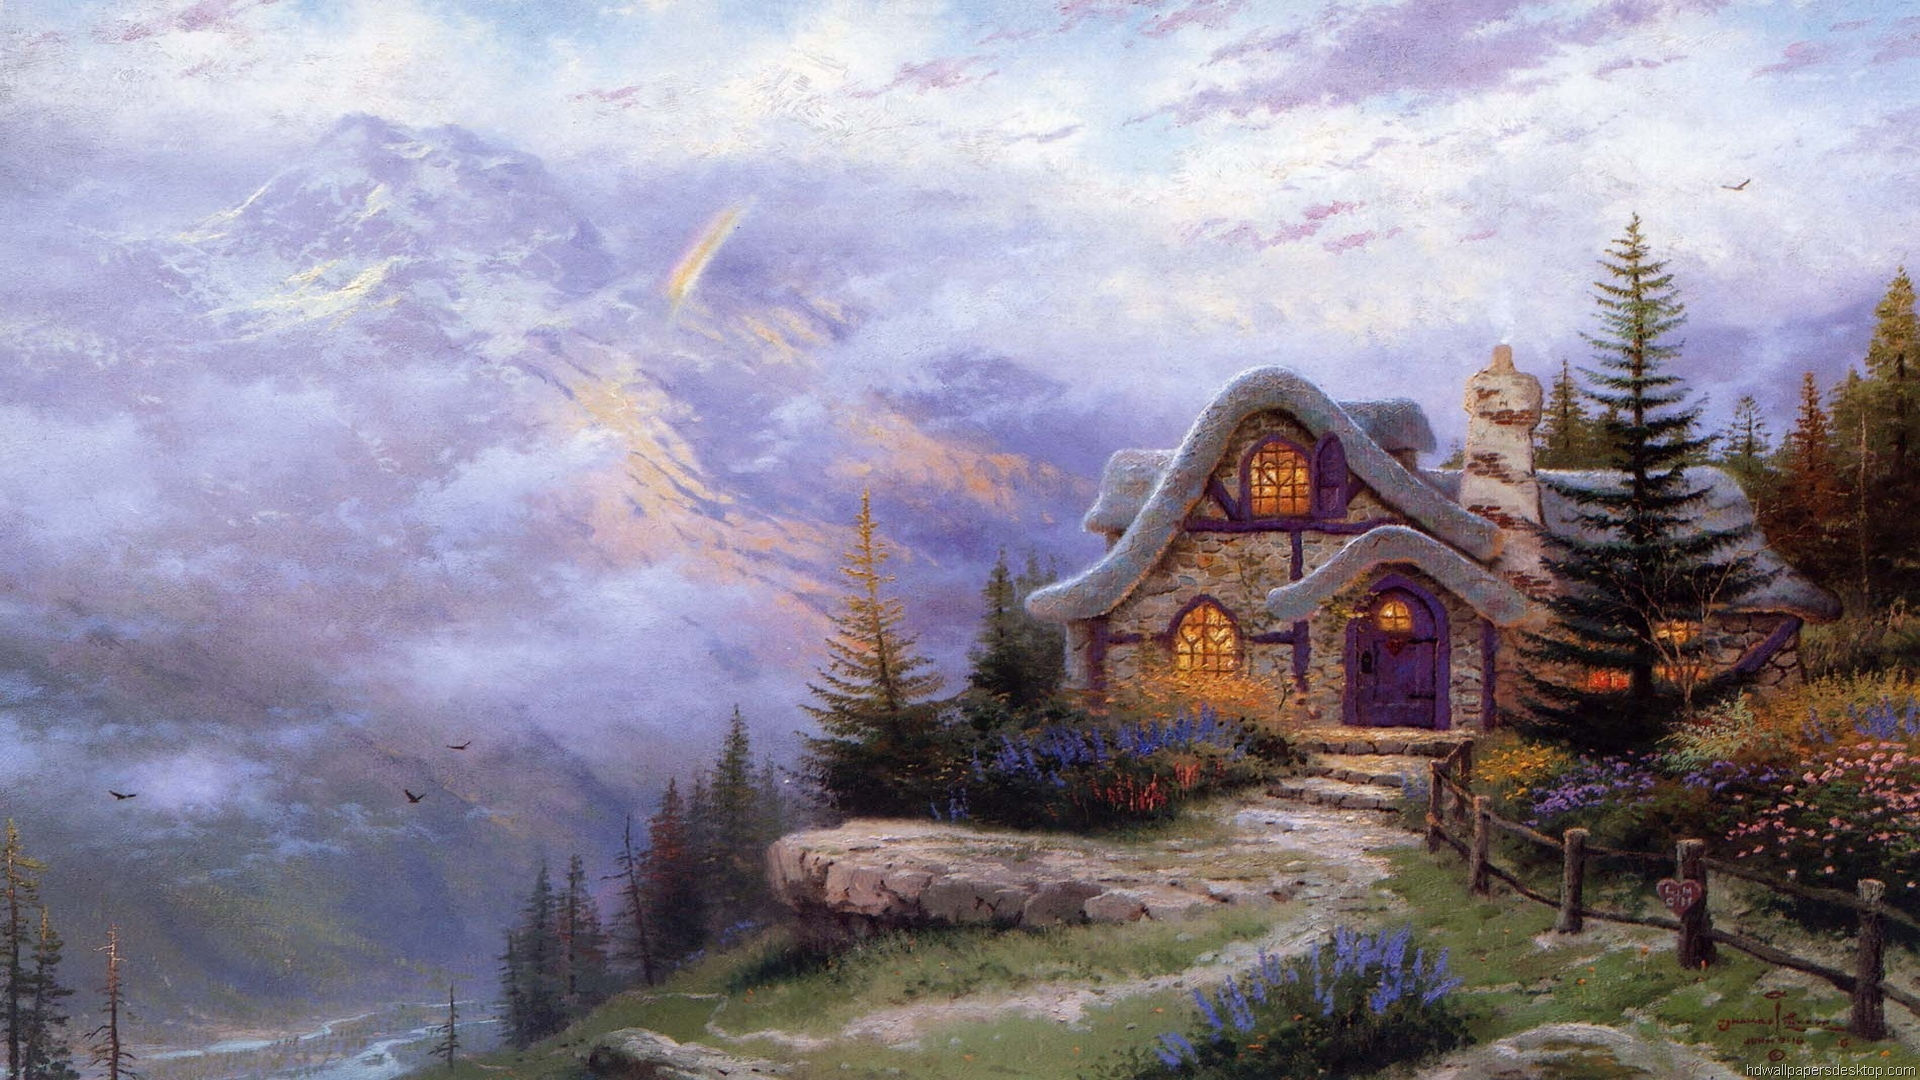 thomas kinkade wallpaper 1920x1080 - photo #30